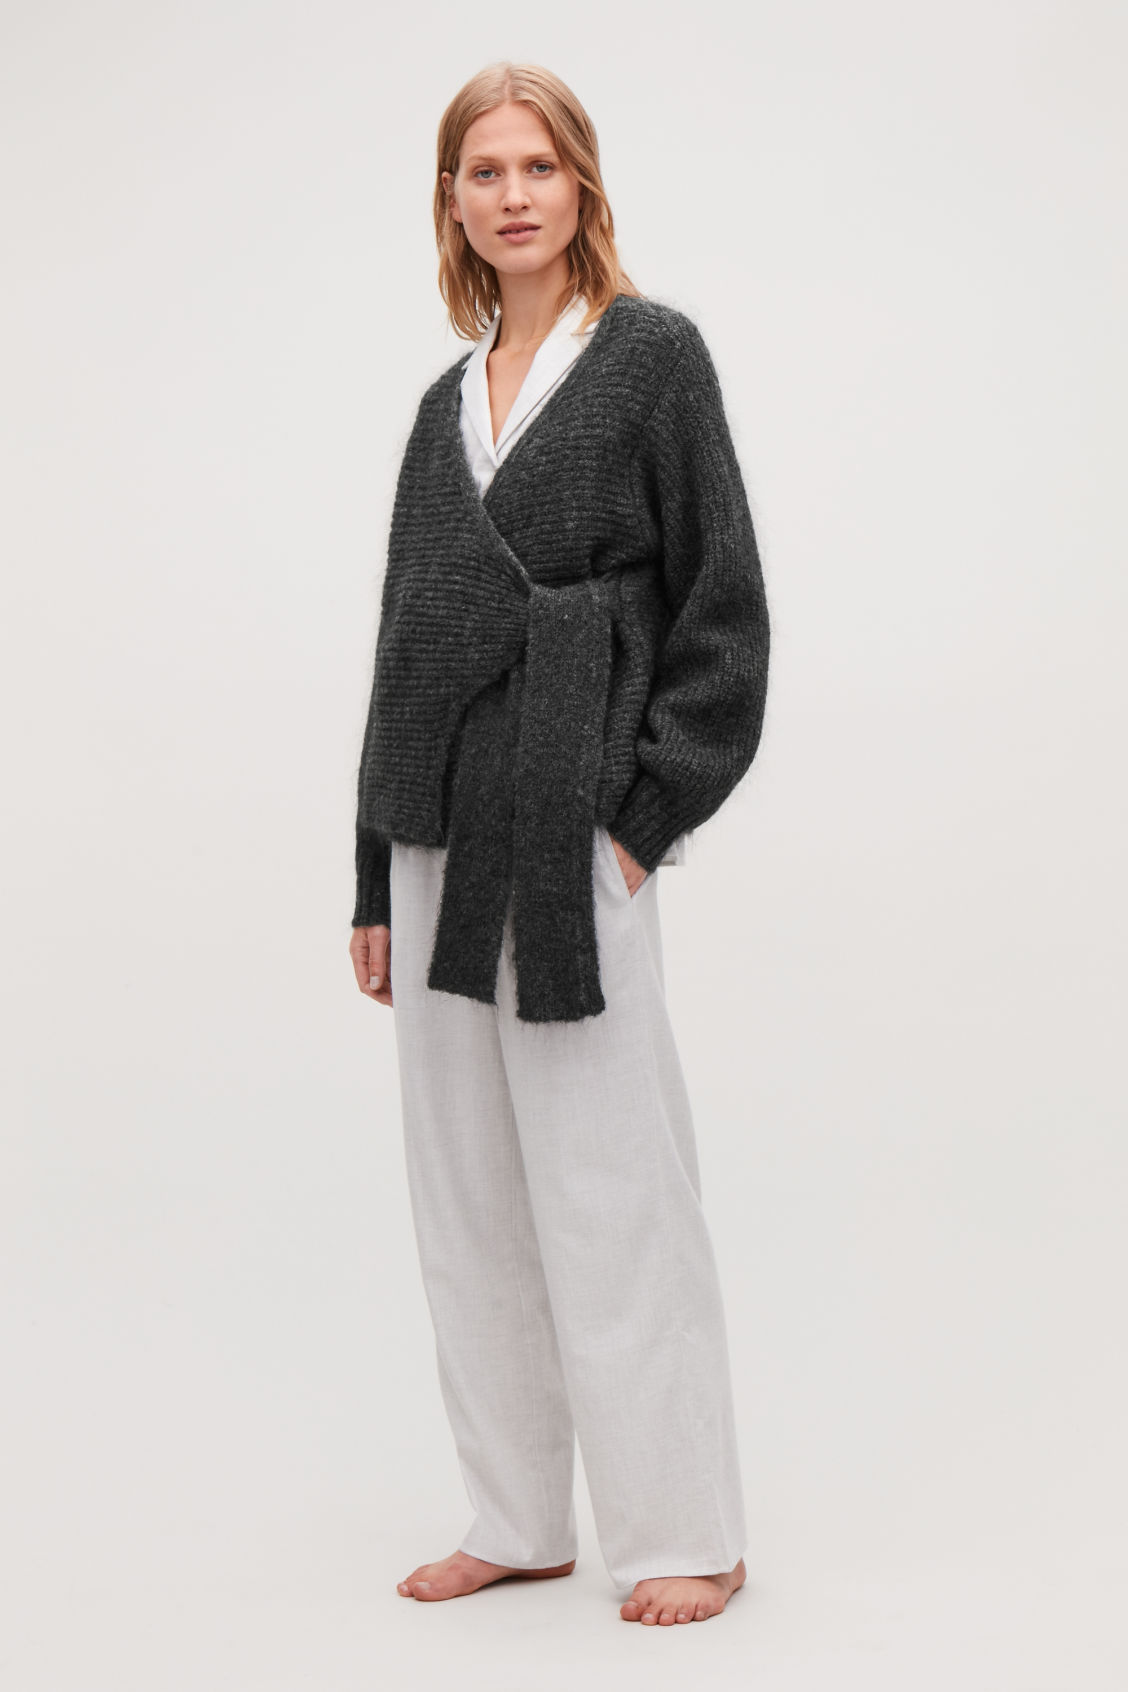 Detailed image of Cos chunky-knit wrap cardigan in grey